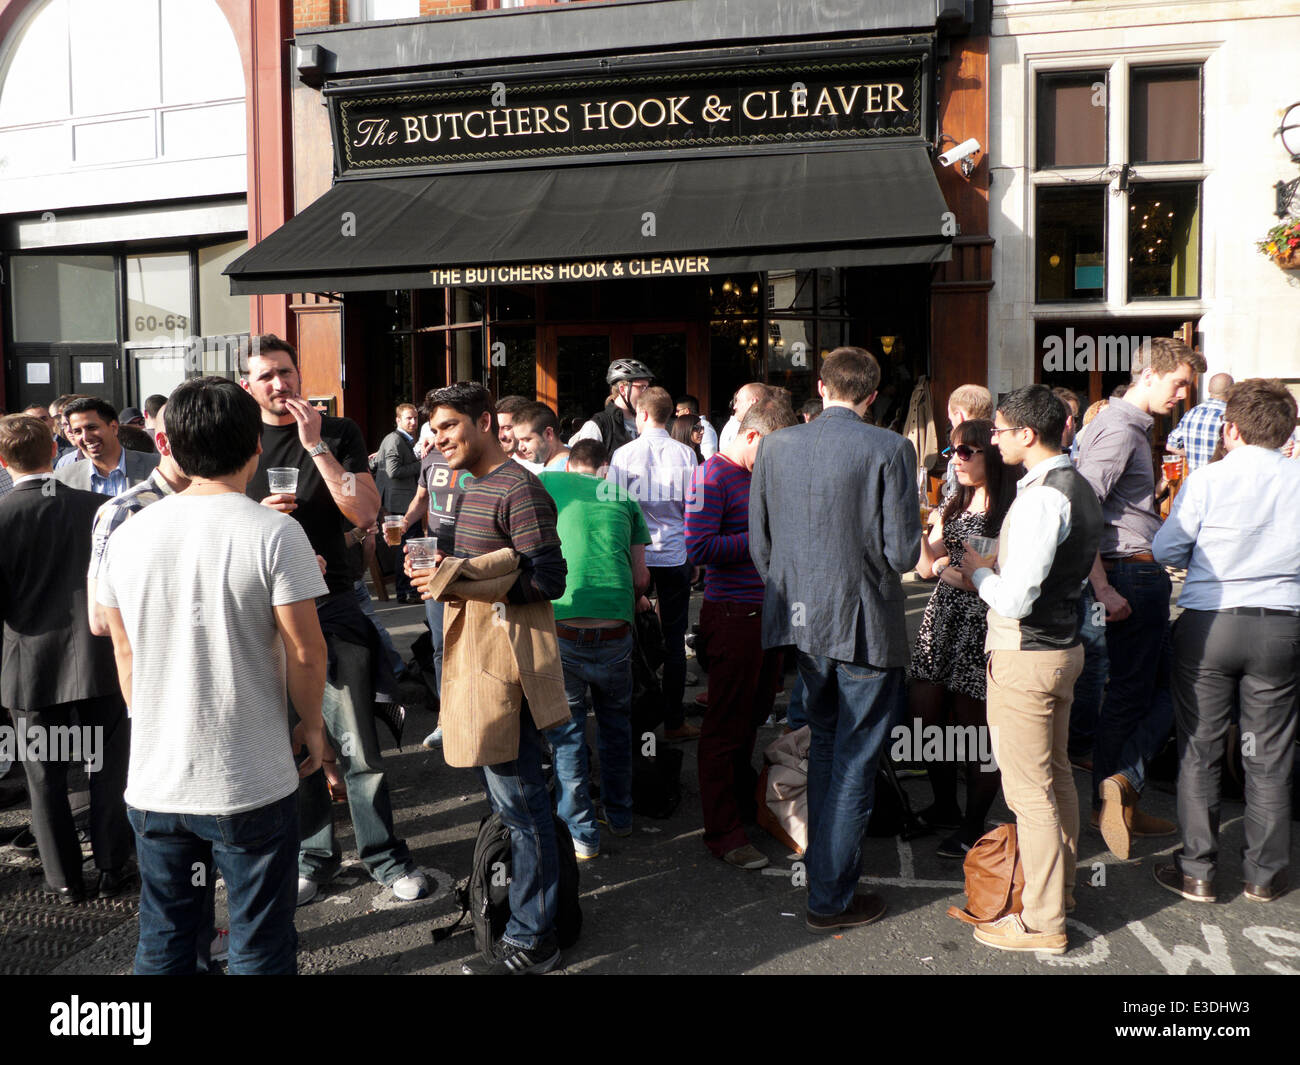 Work colleagues having a beer on the pavement outside The Butchers Hook & Cleaver pub near St Barts Hospital - Stock Image